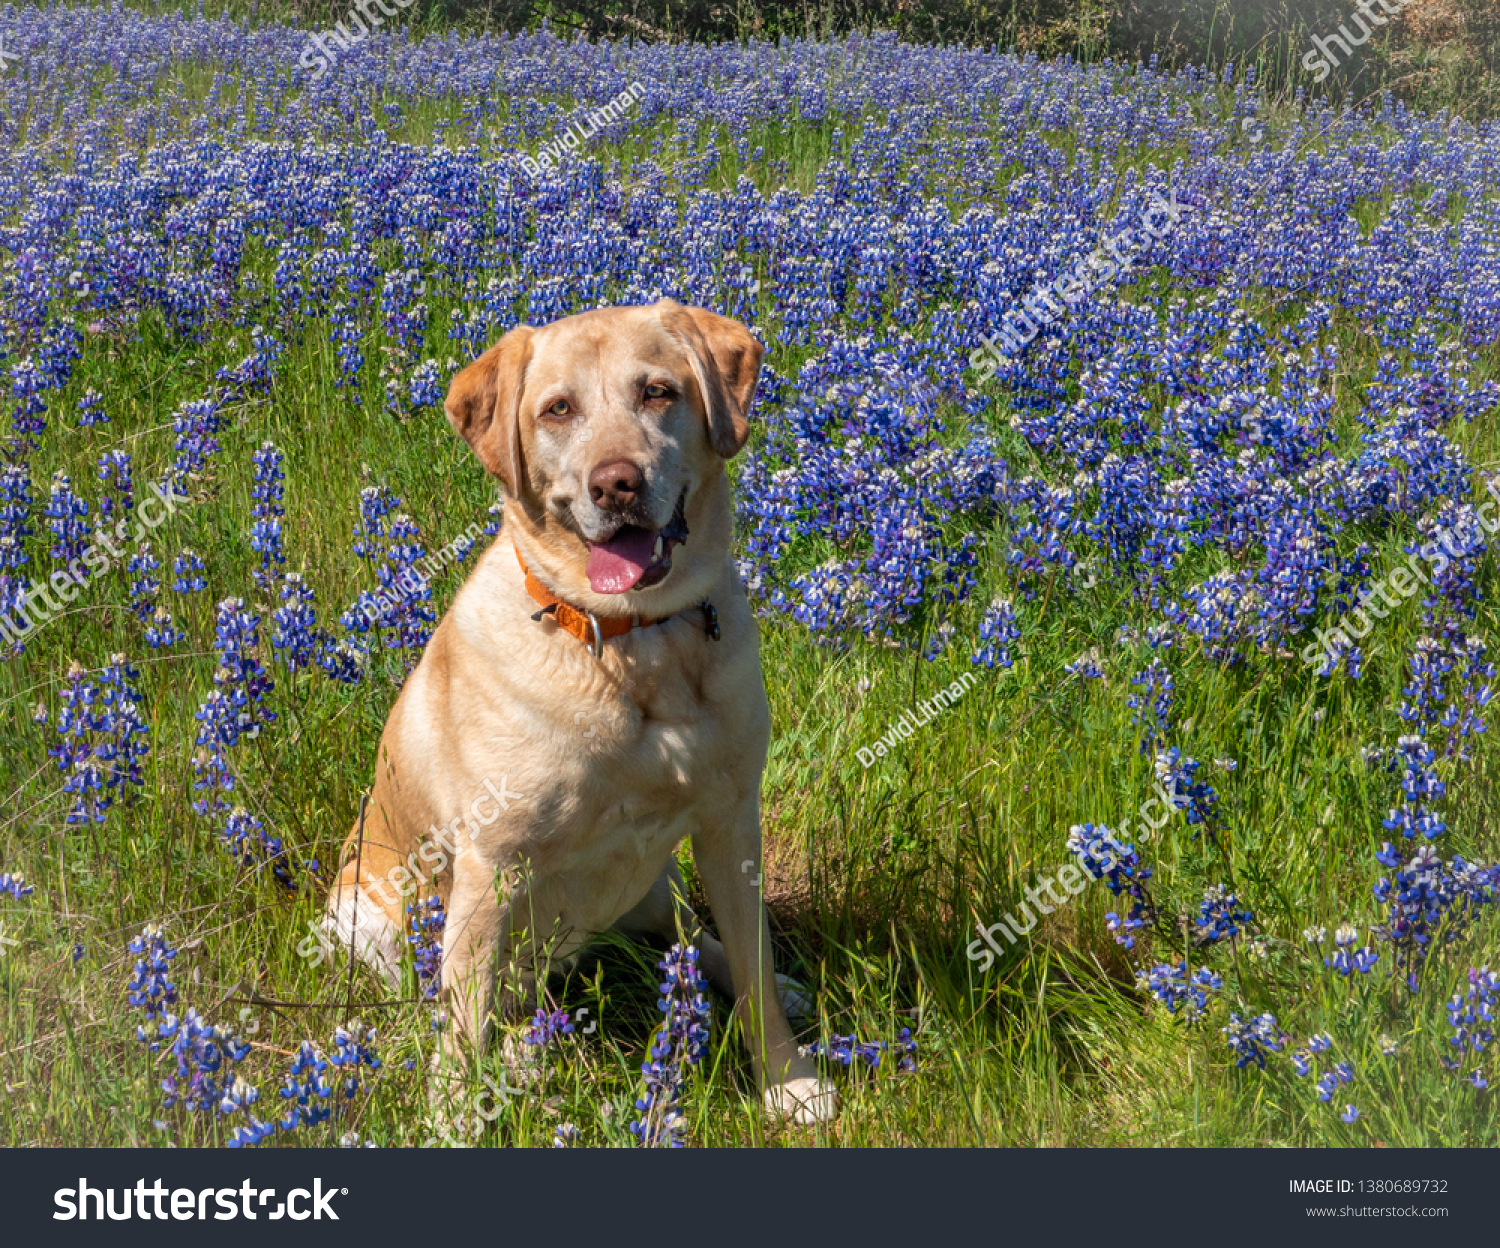 A happy yellow Labrador Retriever sits in a meadow of blue and purple Lupine wildflowers (Lupinus nanus) in the hills of Monterey, California.